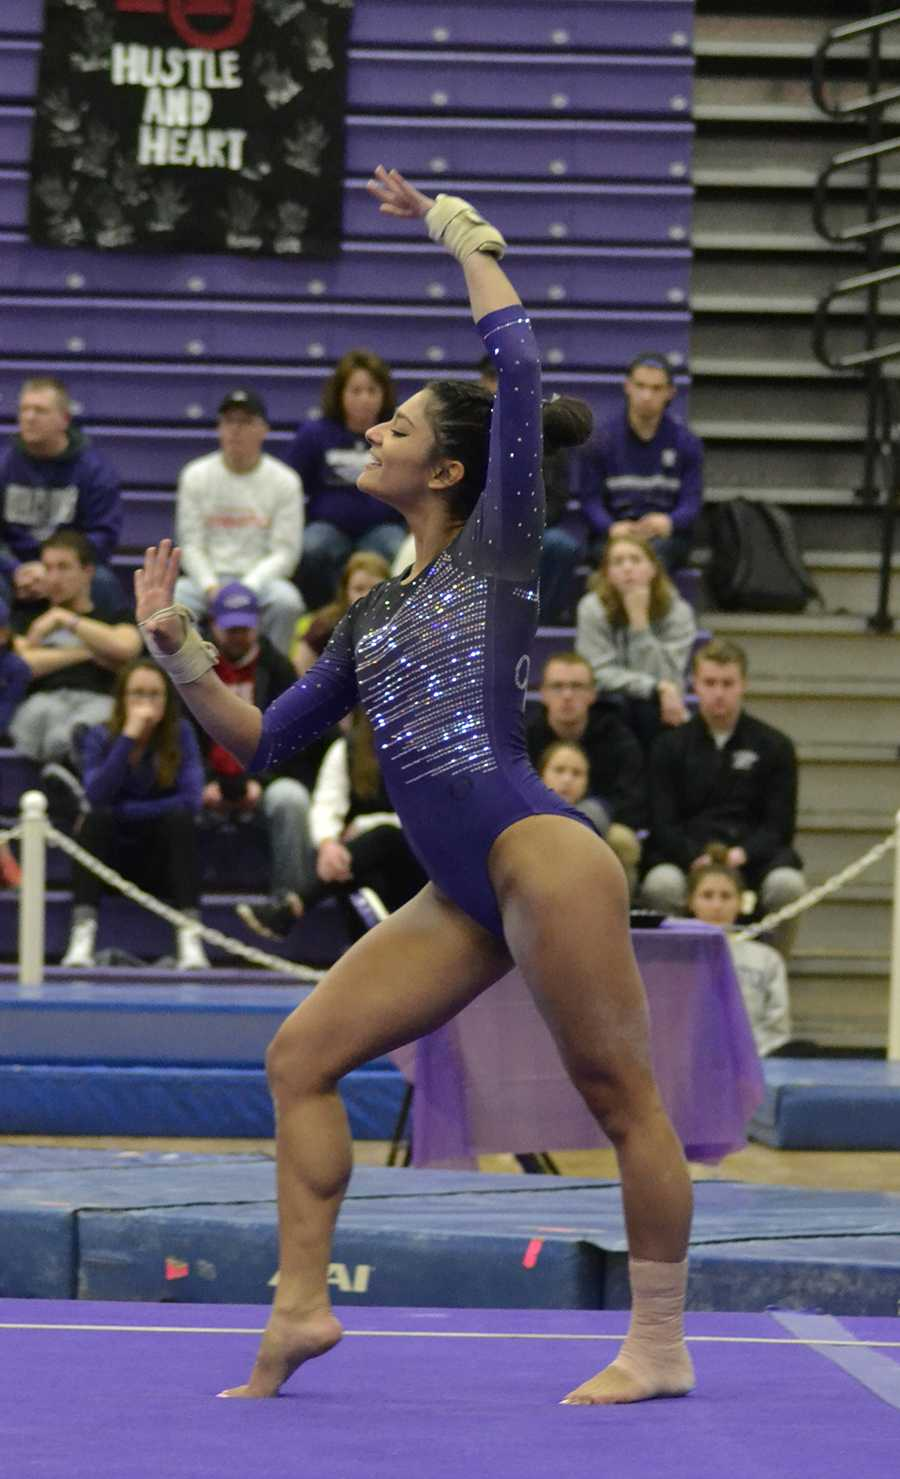 Sophomore Lisa O'Donnell poses during her floor routine during the regular-season ending victory against Hamline University (Minnesota). O'Donnell won the floor exercise competition with a score of 9.800, her season best score. Photo by Sierra High